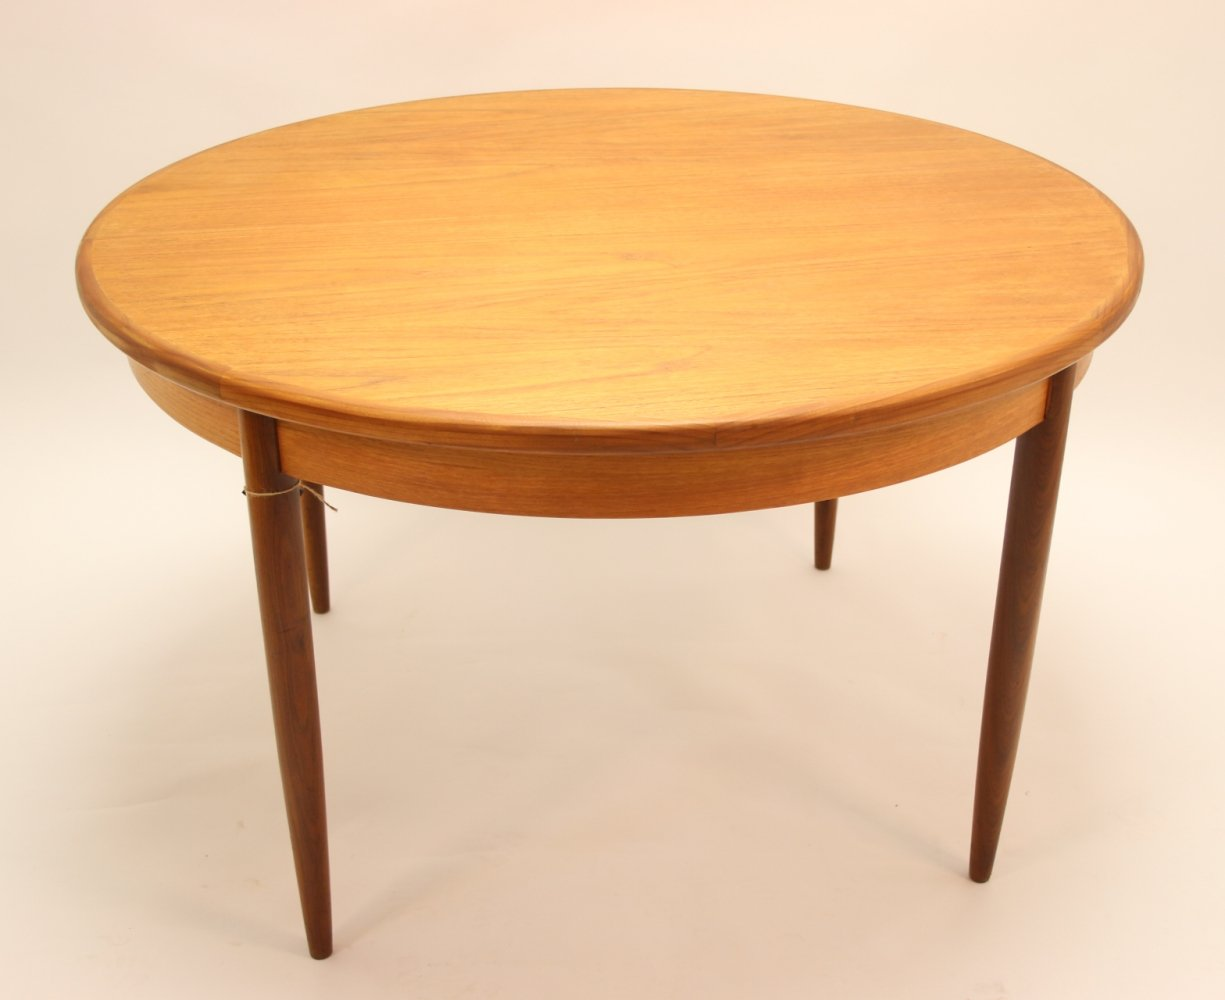 Extendable G Plan Teak wood Dining Table, 1960s